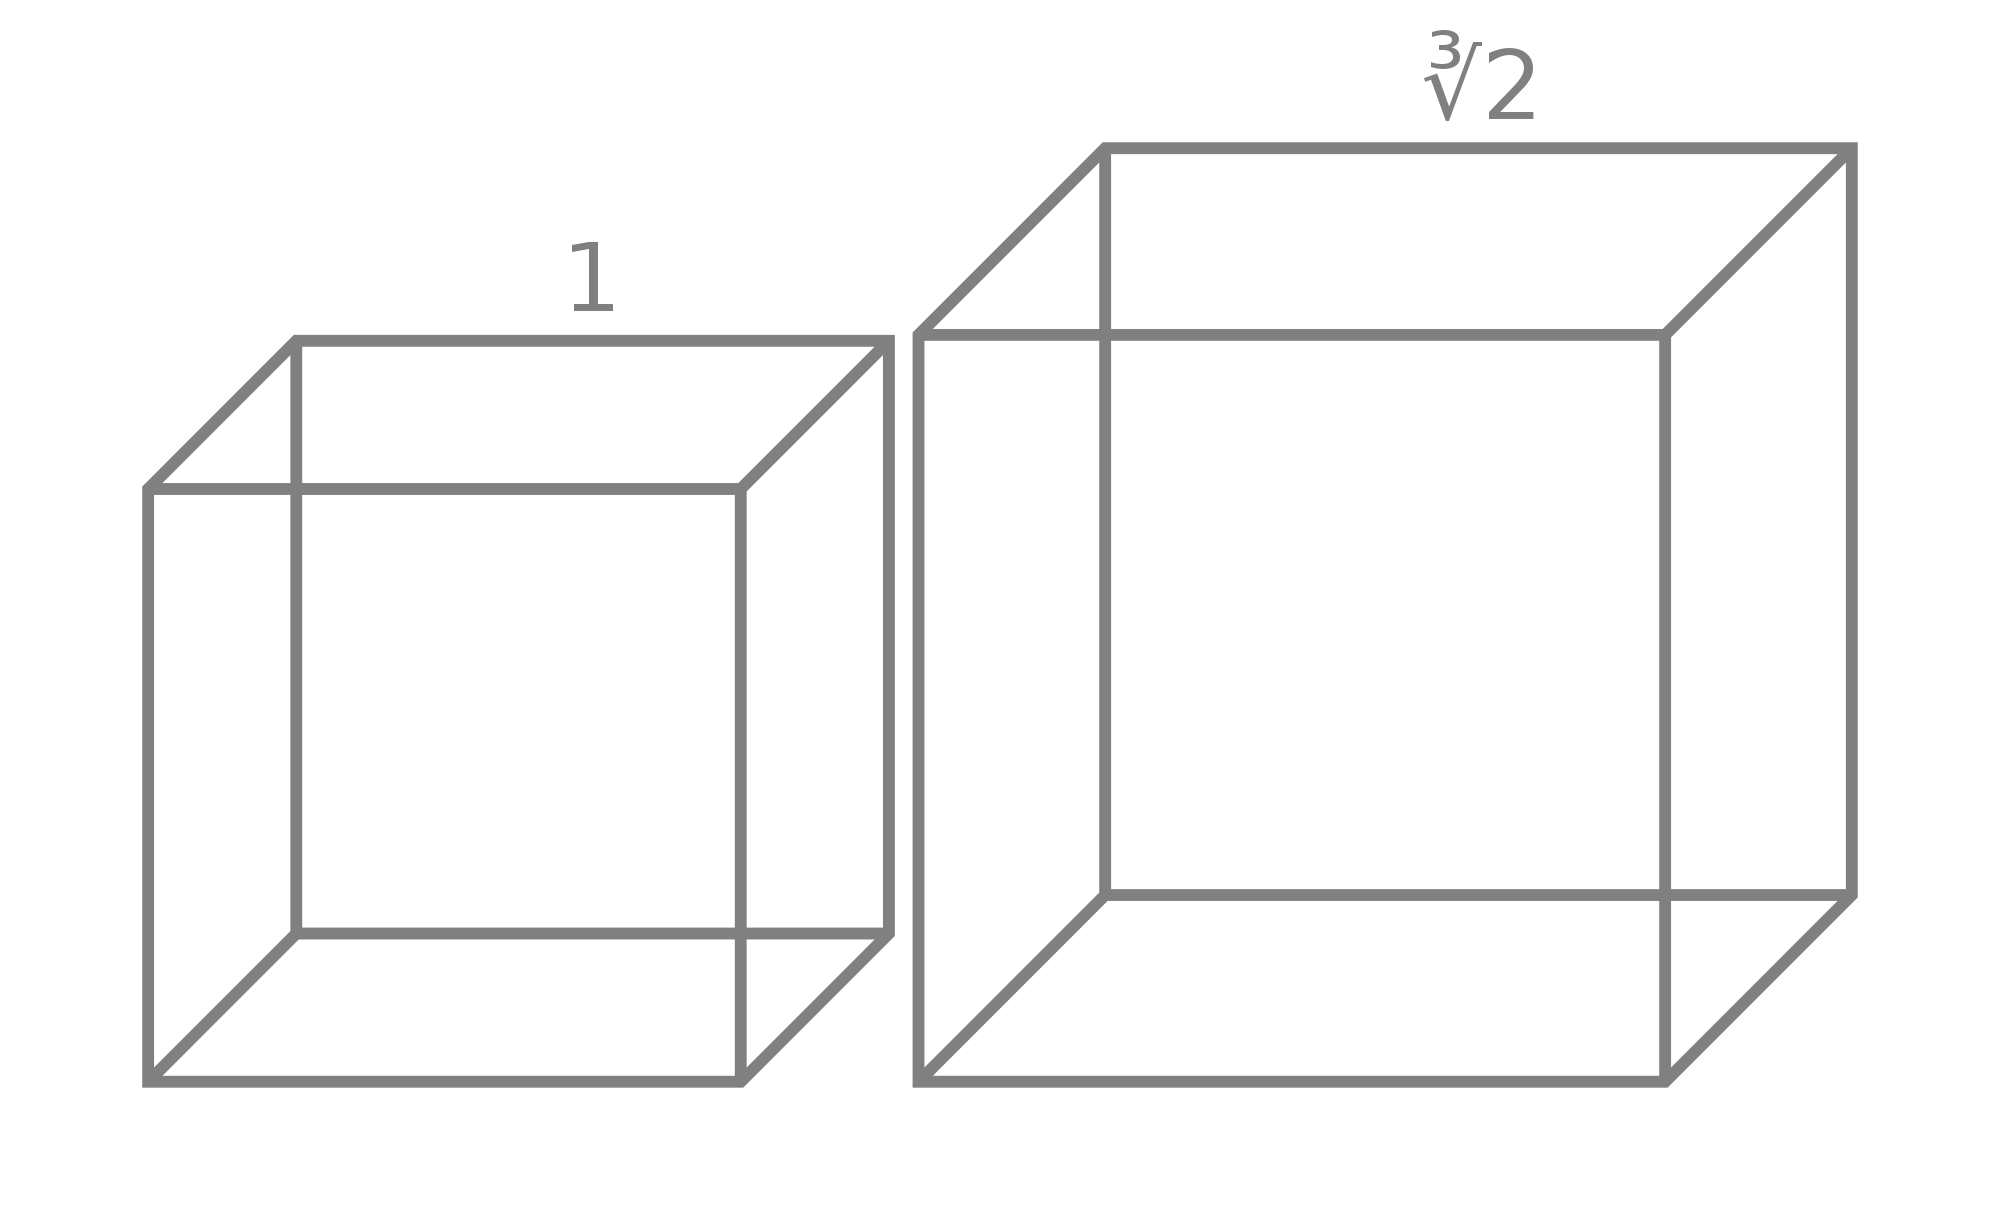 Cubes vector impossible. Doubling the cube wikipedia